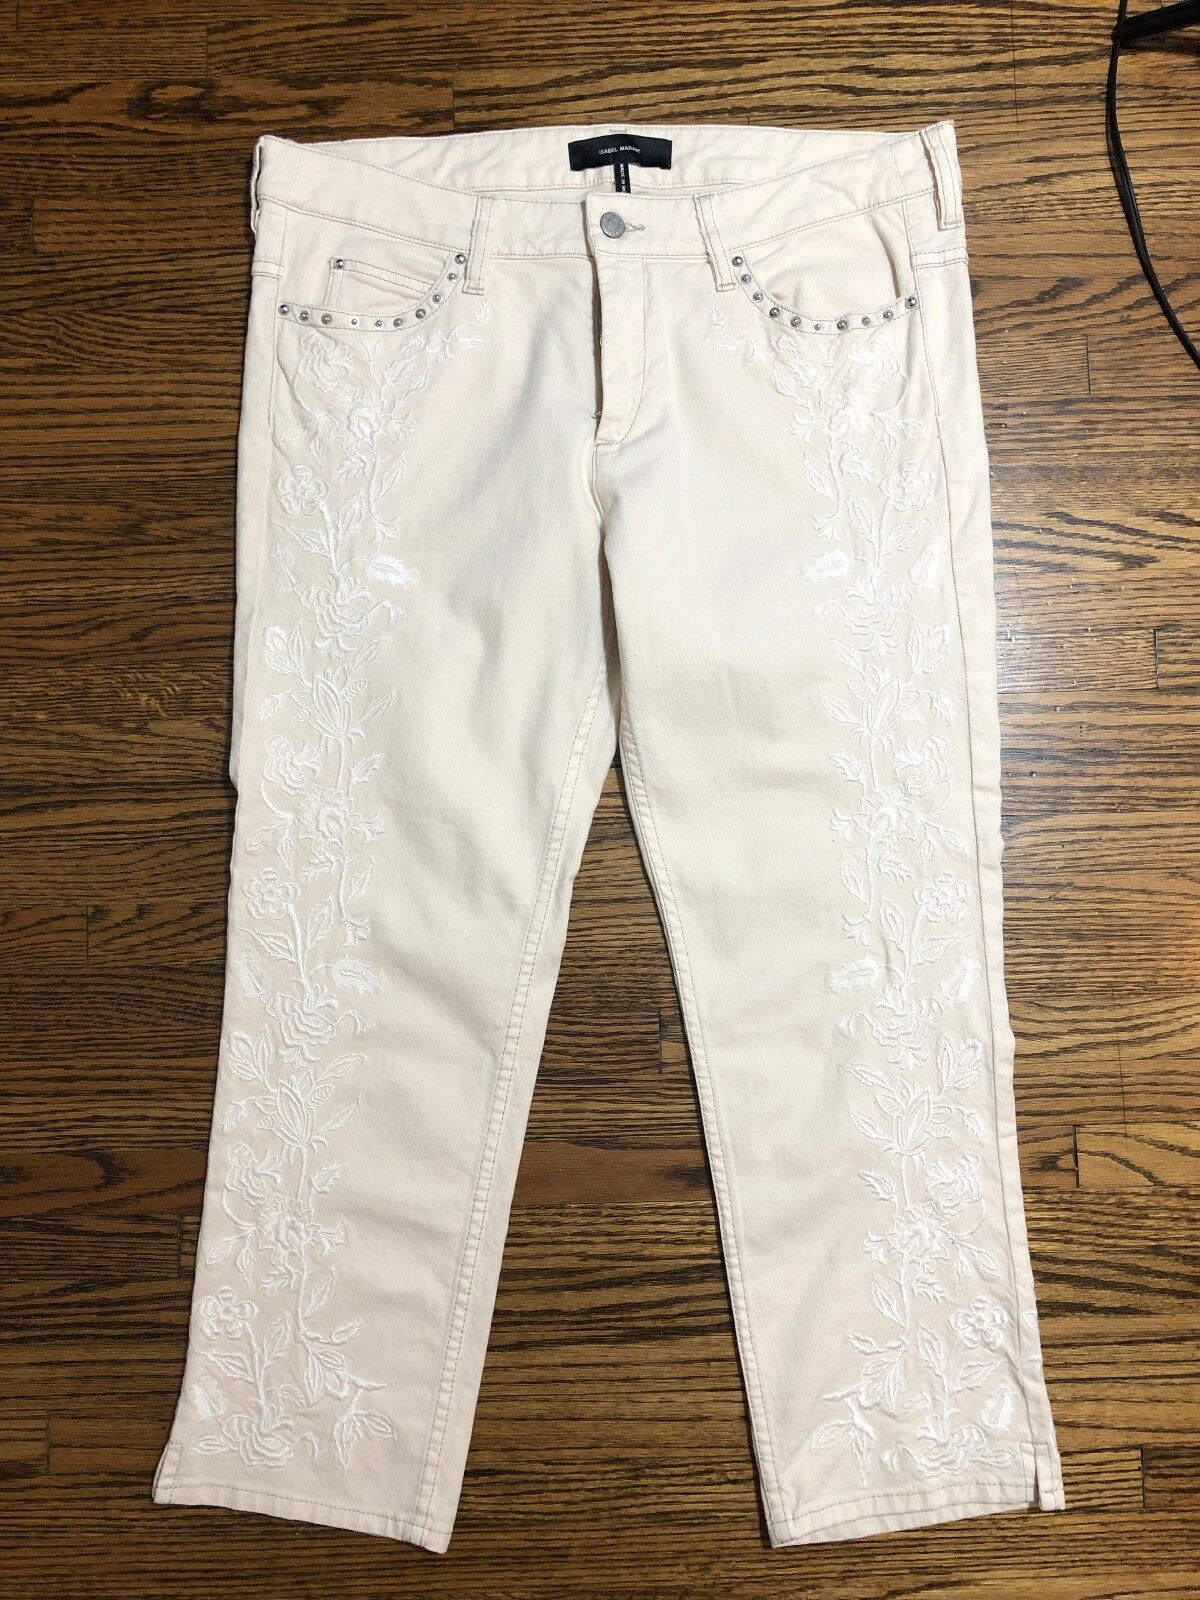 NWOT Isabel Marant Gallo Pant in Pale Straw Size FR 42  US 10  525